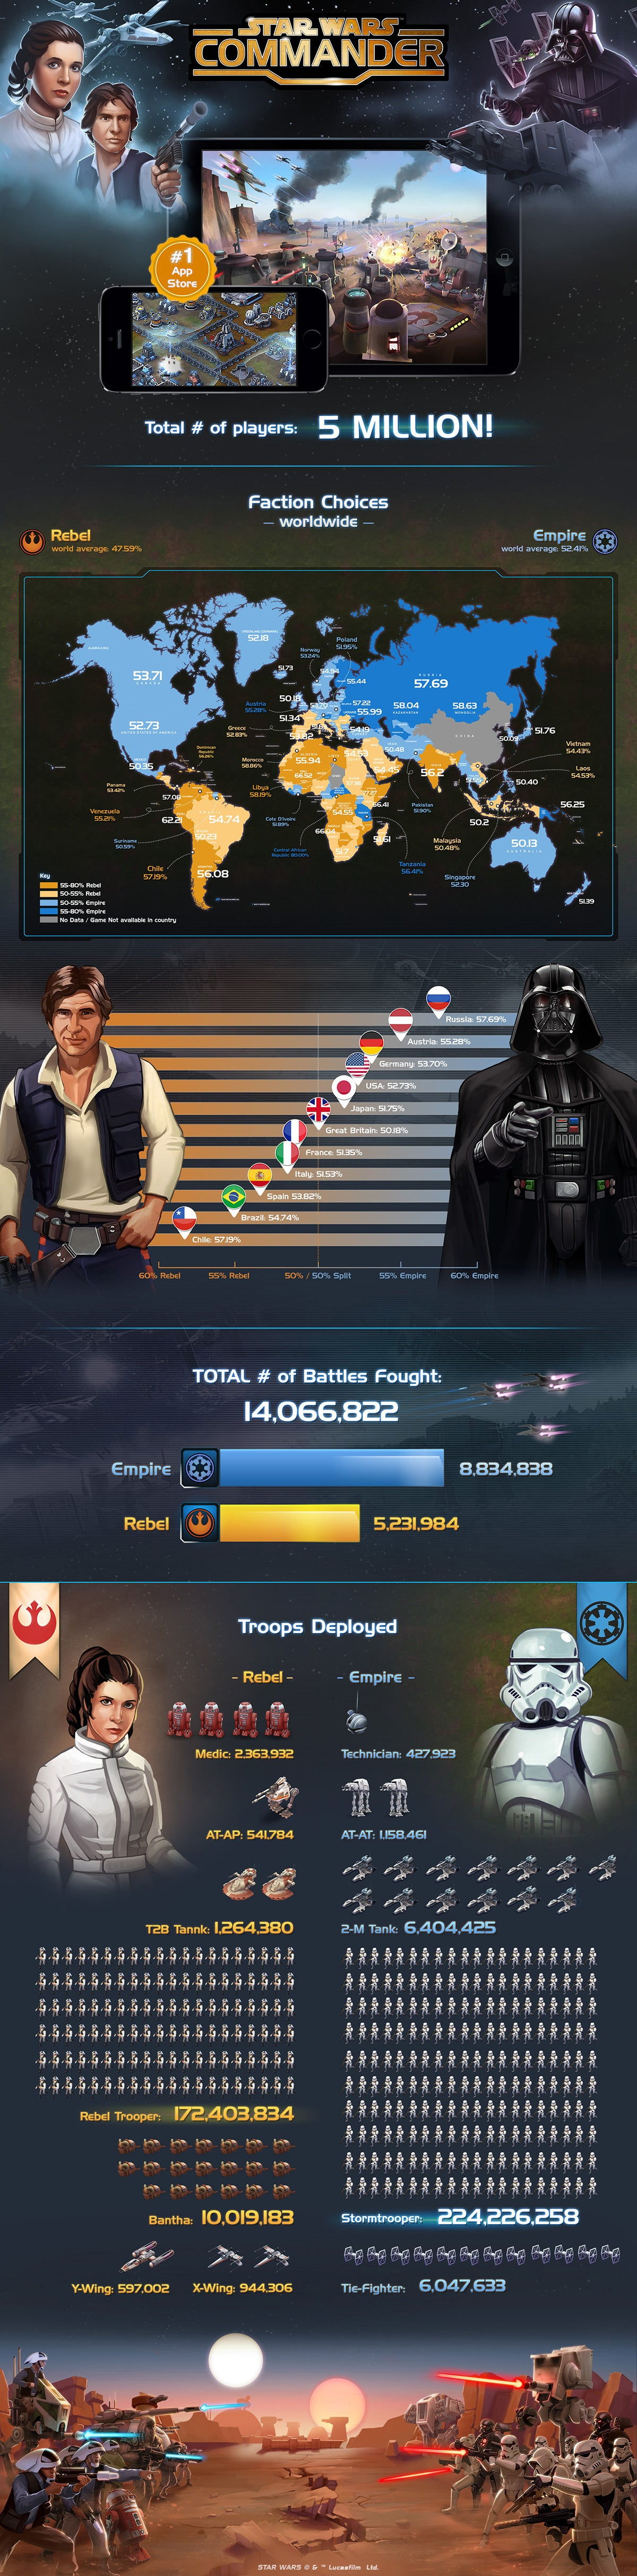 The World's A Little More Galactic Empire Than Rebel Alliance